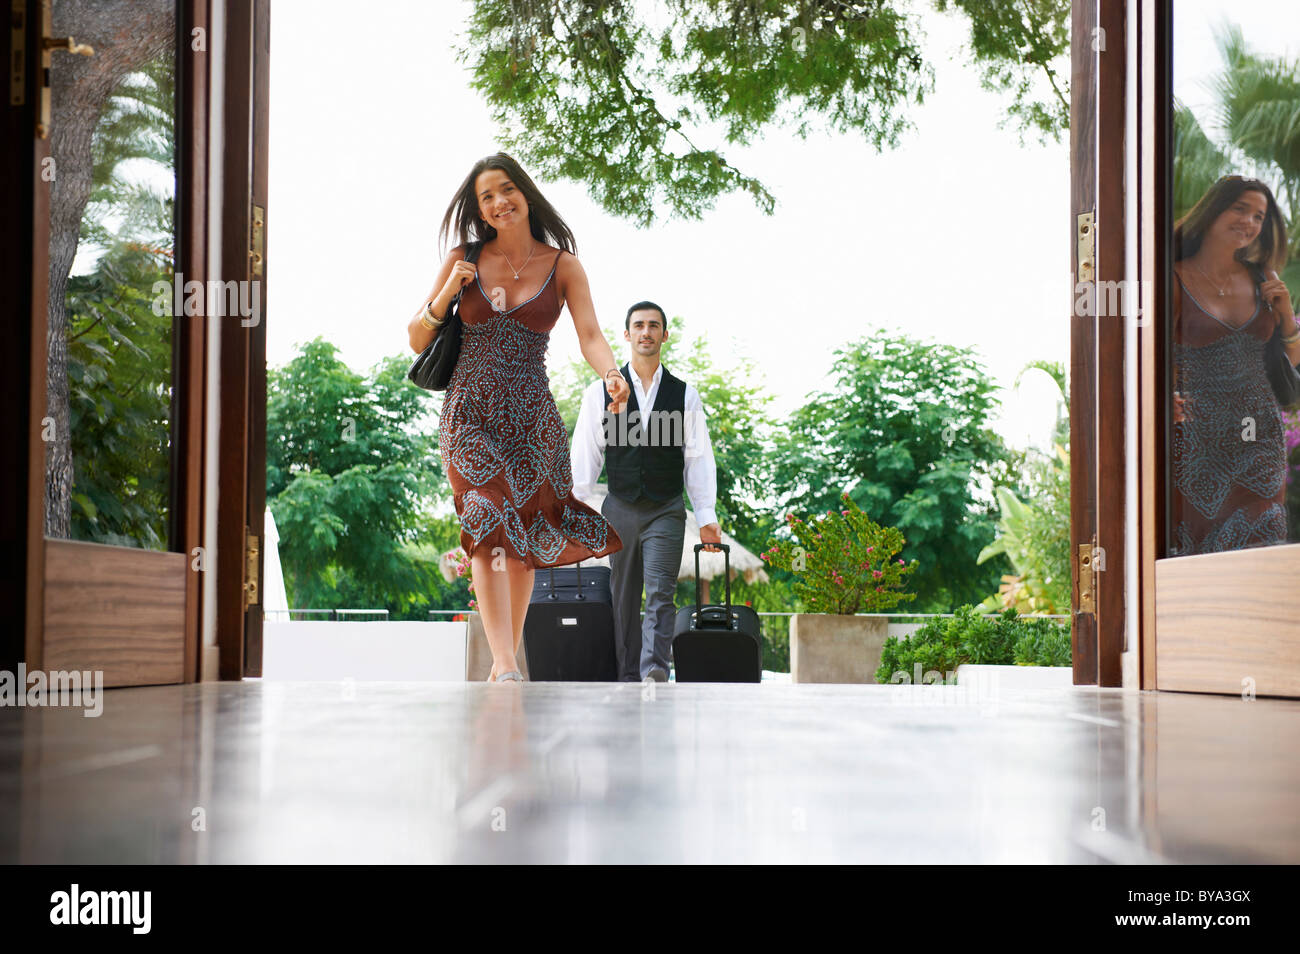 Woman entering hotel man carrying bags - Stock Image